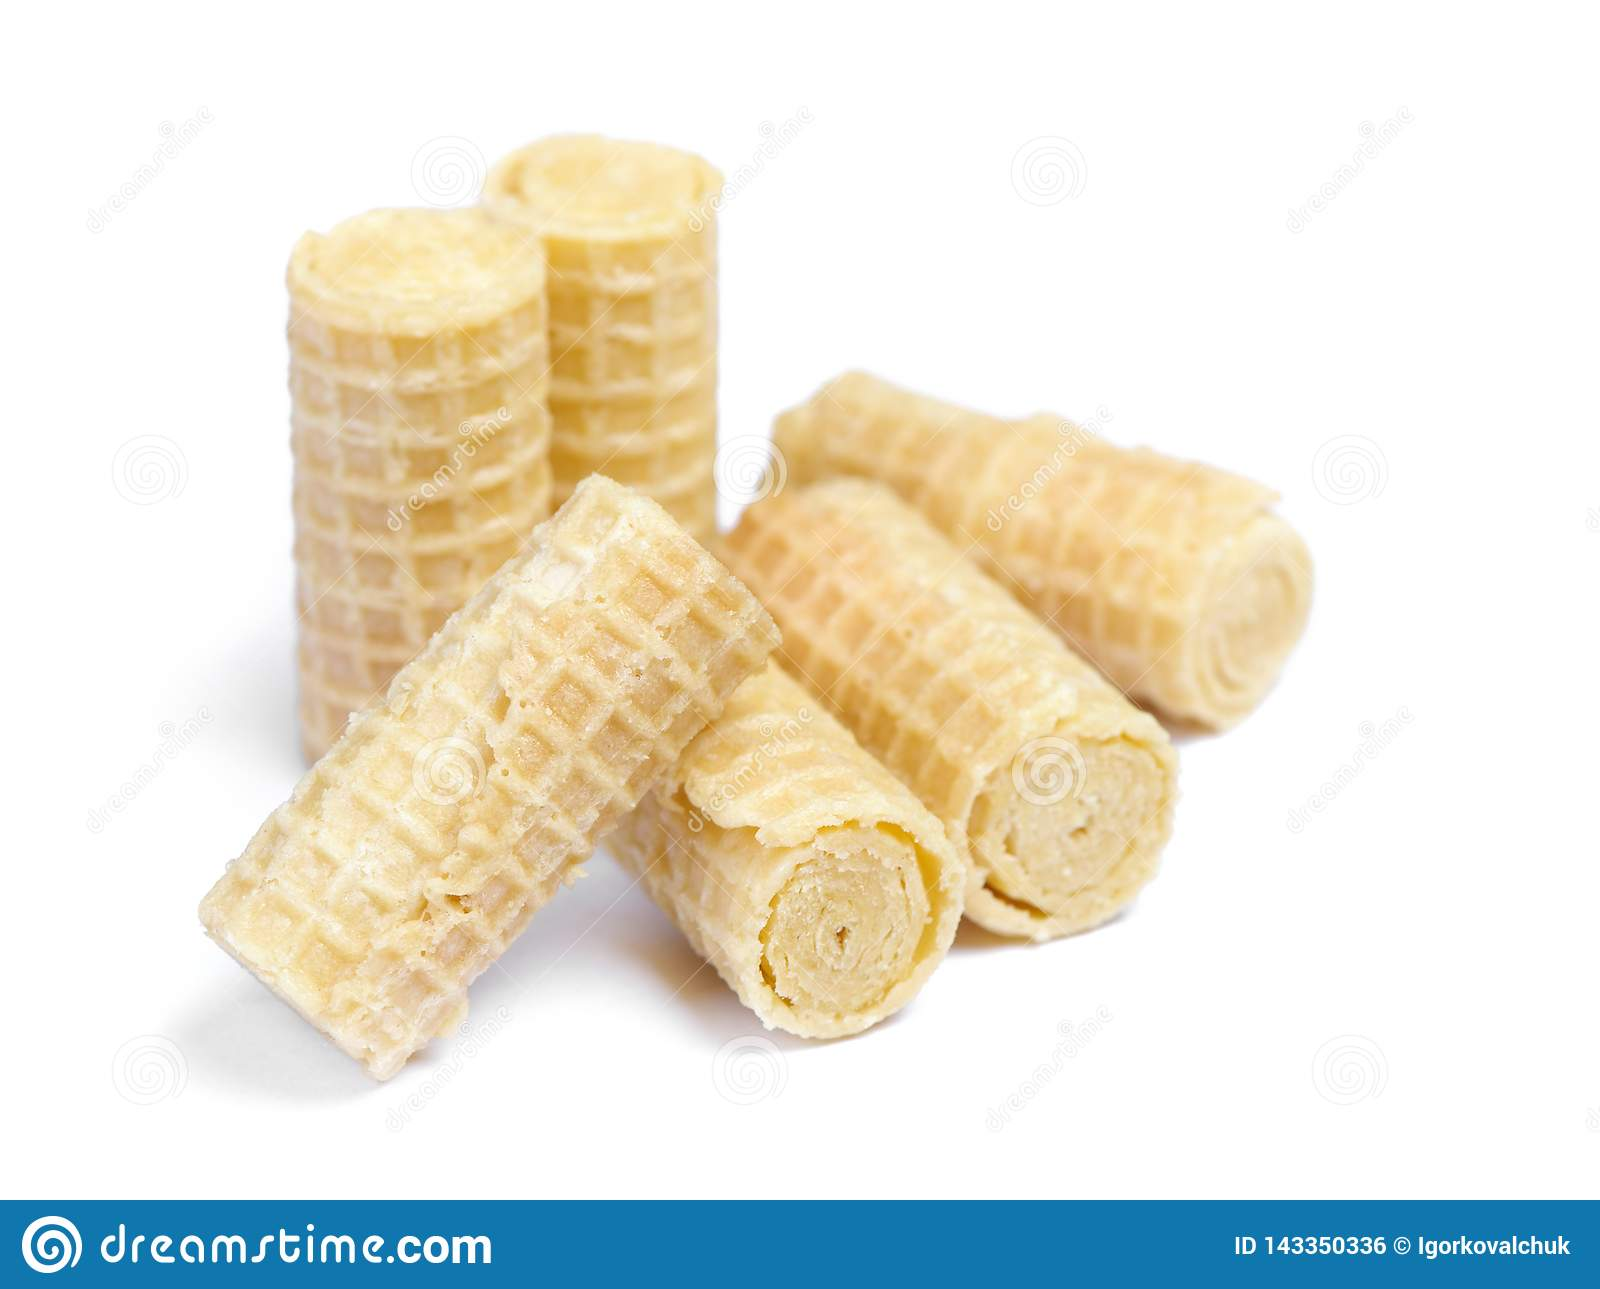 Group of wafer rolls